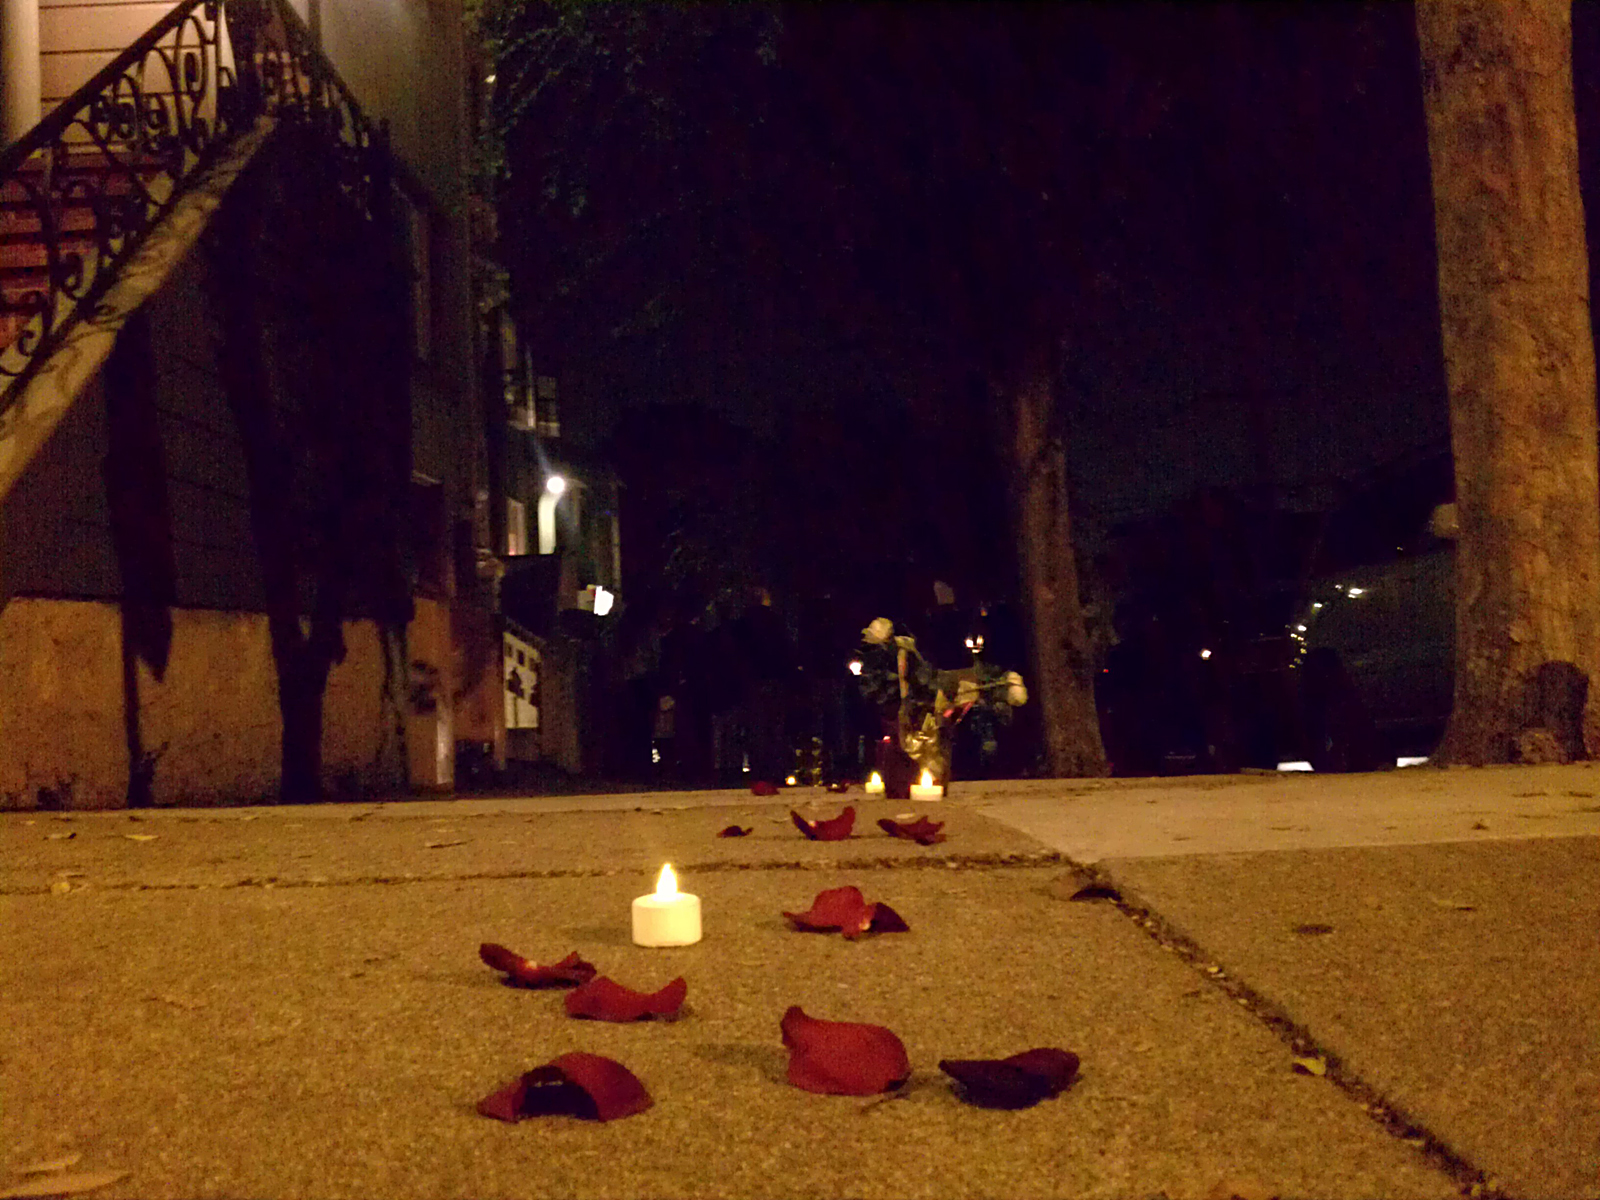 Neighbors scattered rose petals and candles during a vigil on Dec. 14. Photo by Hélène Goupil